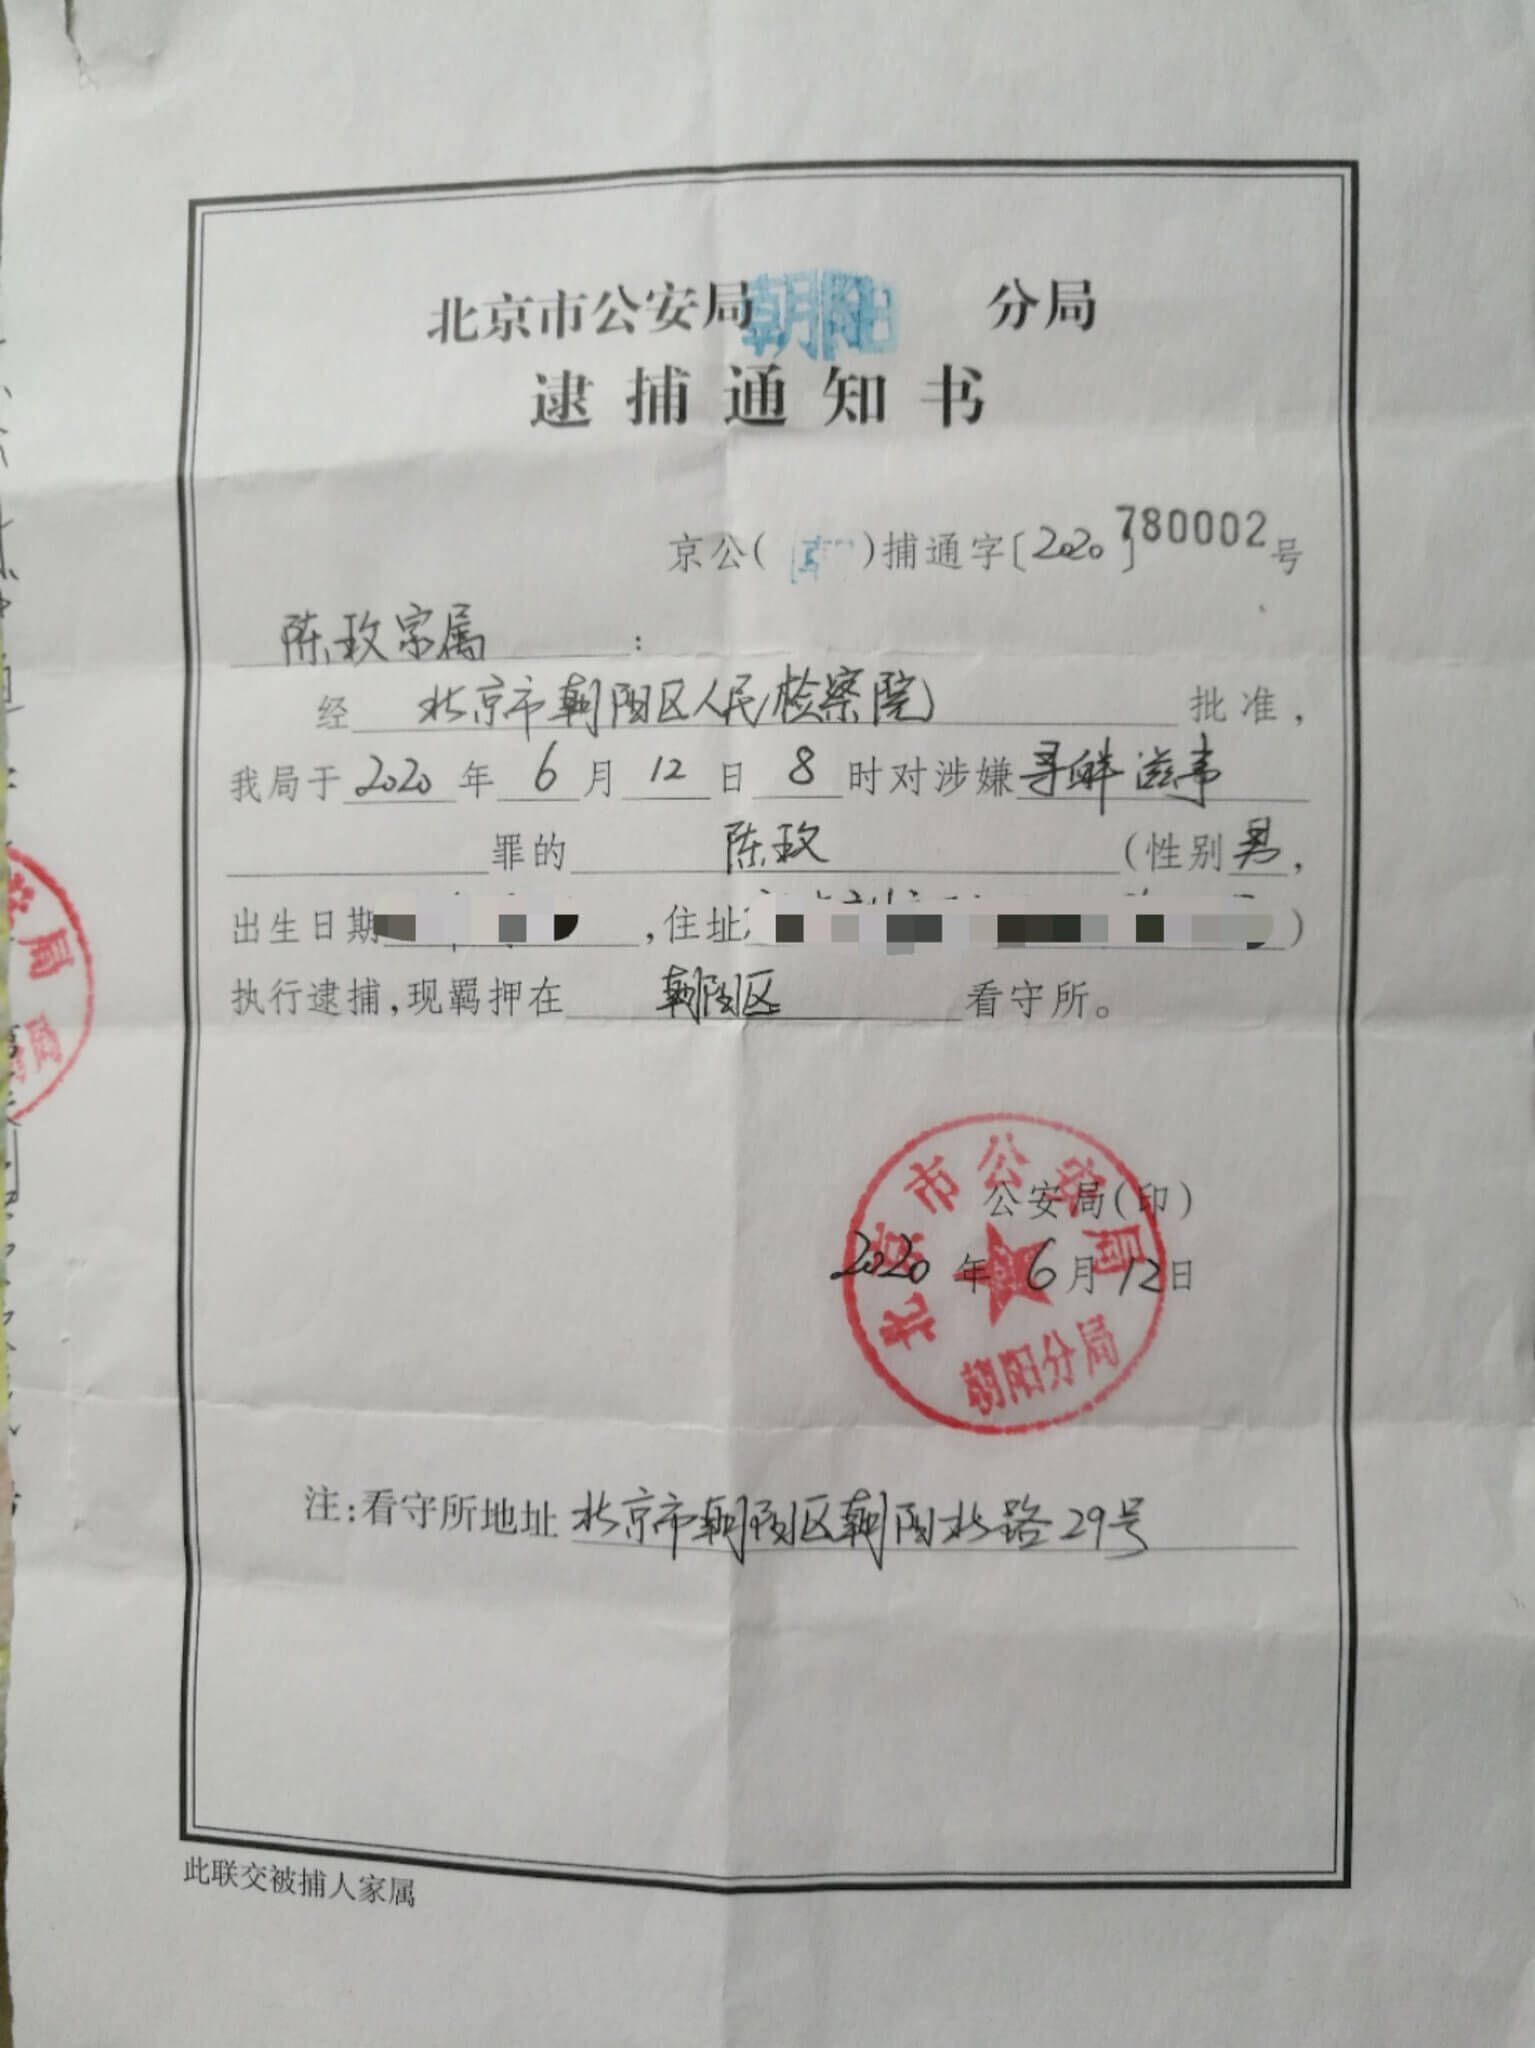 This is the arrest warrant for Chen Mei issued by Beijing Public Security Bureau on June 12, 2020.